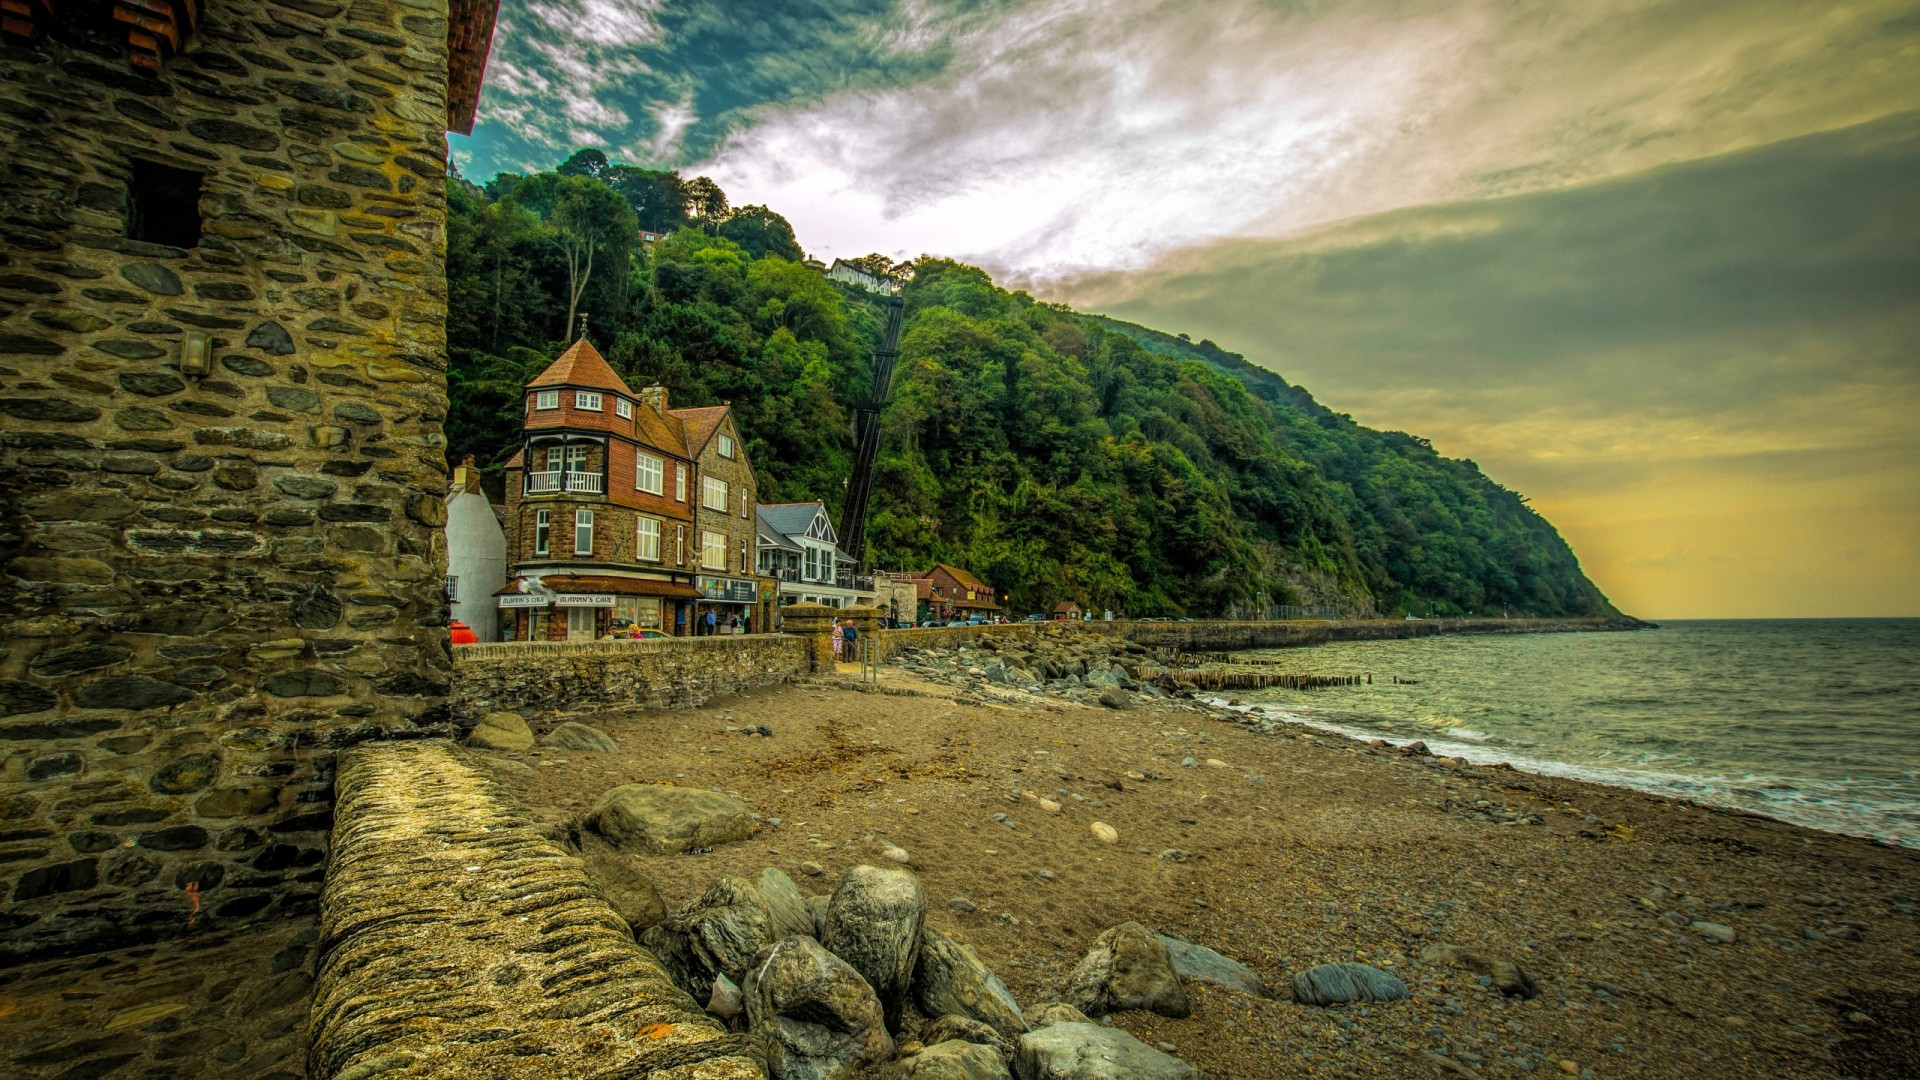 Uncharted Iphone Wallpaper Houses On The Coast Of England Hd Wallpaper Background